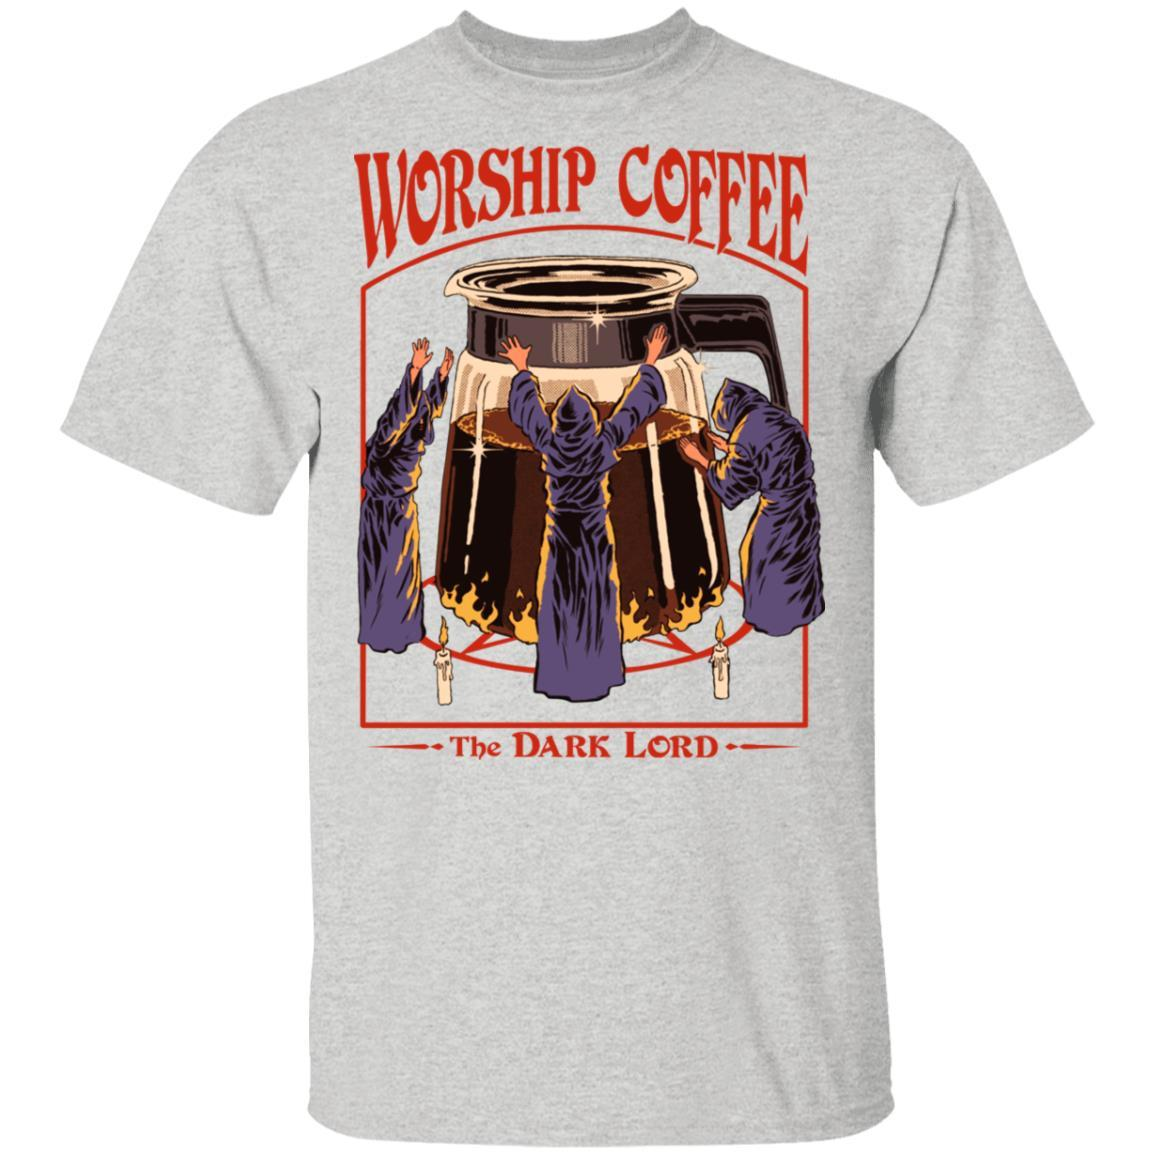 Worship Coffee The Dark Lord T-Shirts, Hoodies 1049-9952-89706084-48184 - Tee Ript